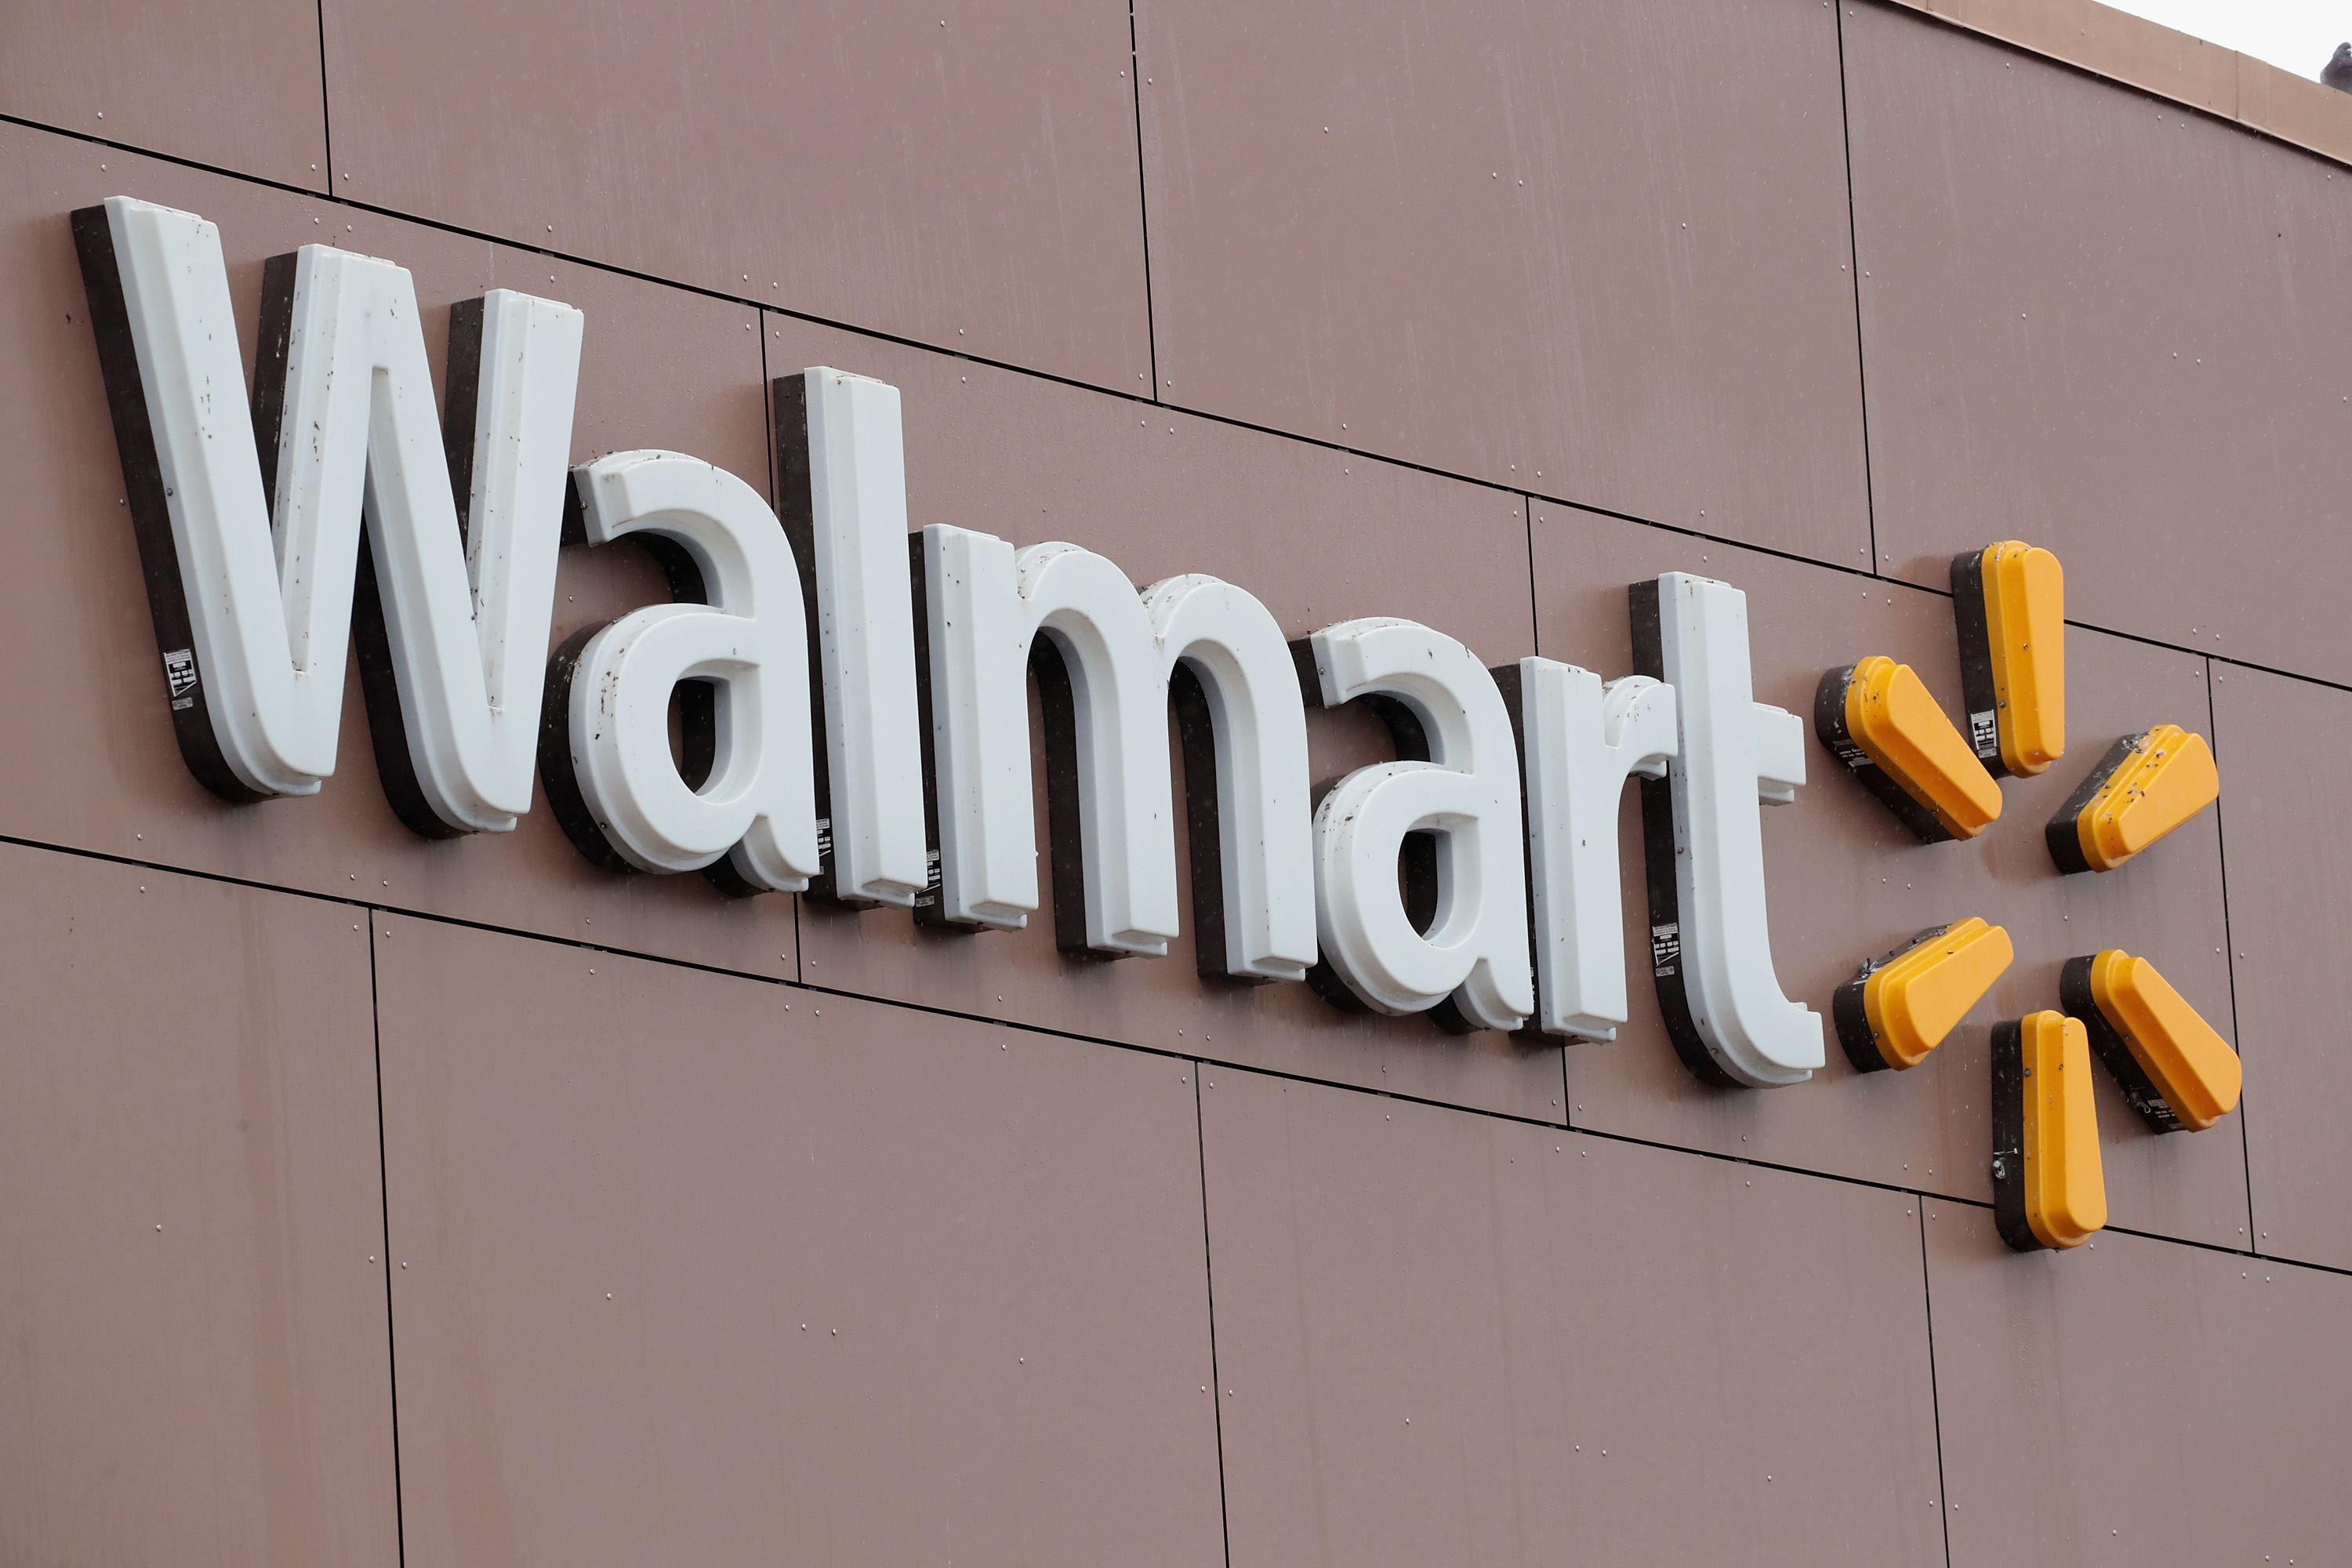 Walmart Bans Woman for Drinking While Riding Cart in Parking Lot